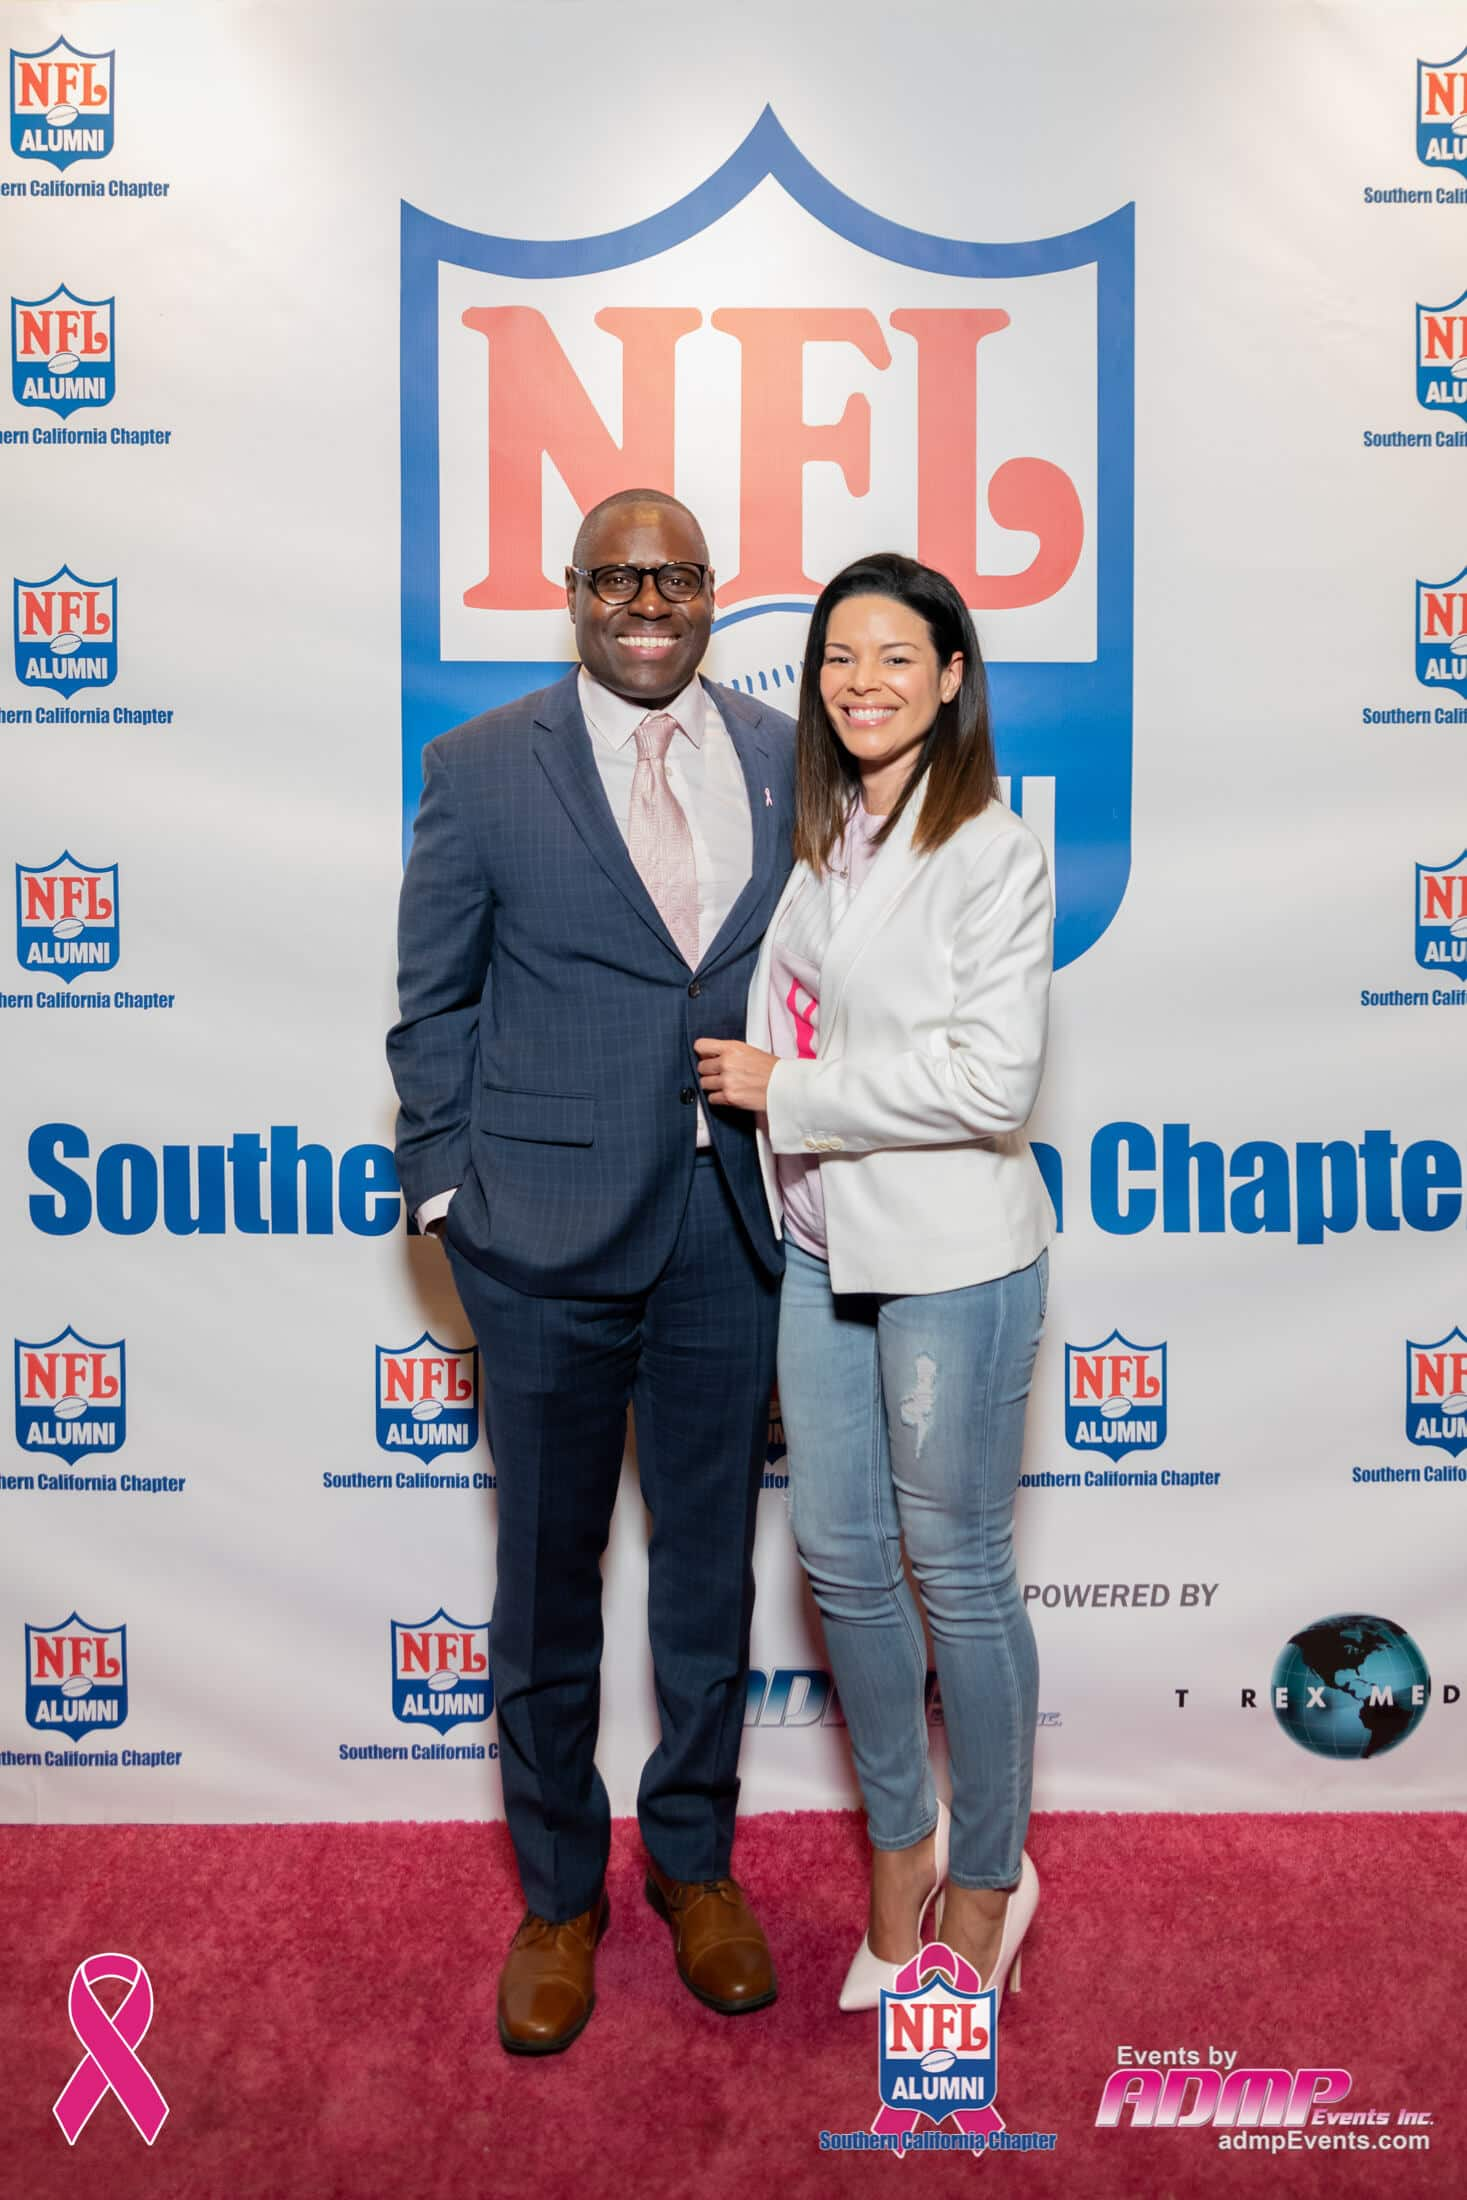 NFL Alumni SoCal Charity Event Series Breast Cancer Event 10-14-19-220